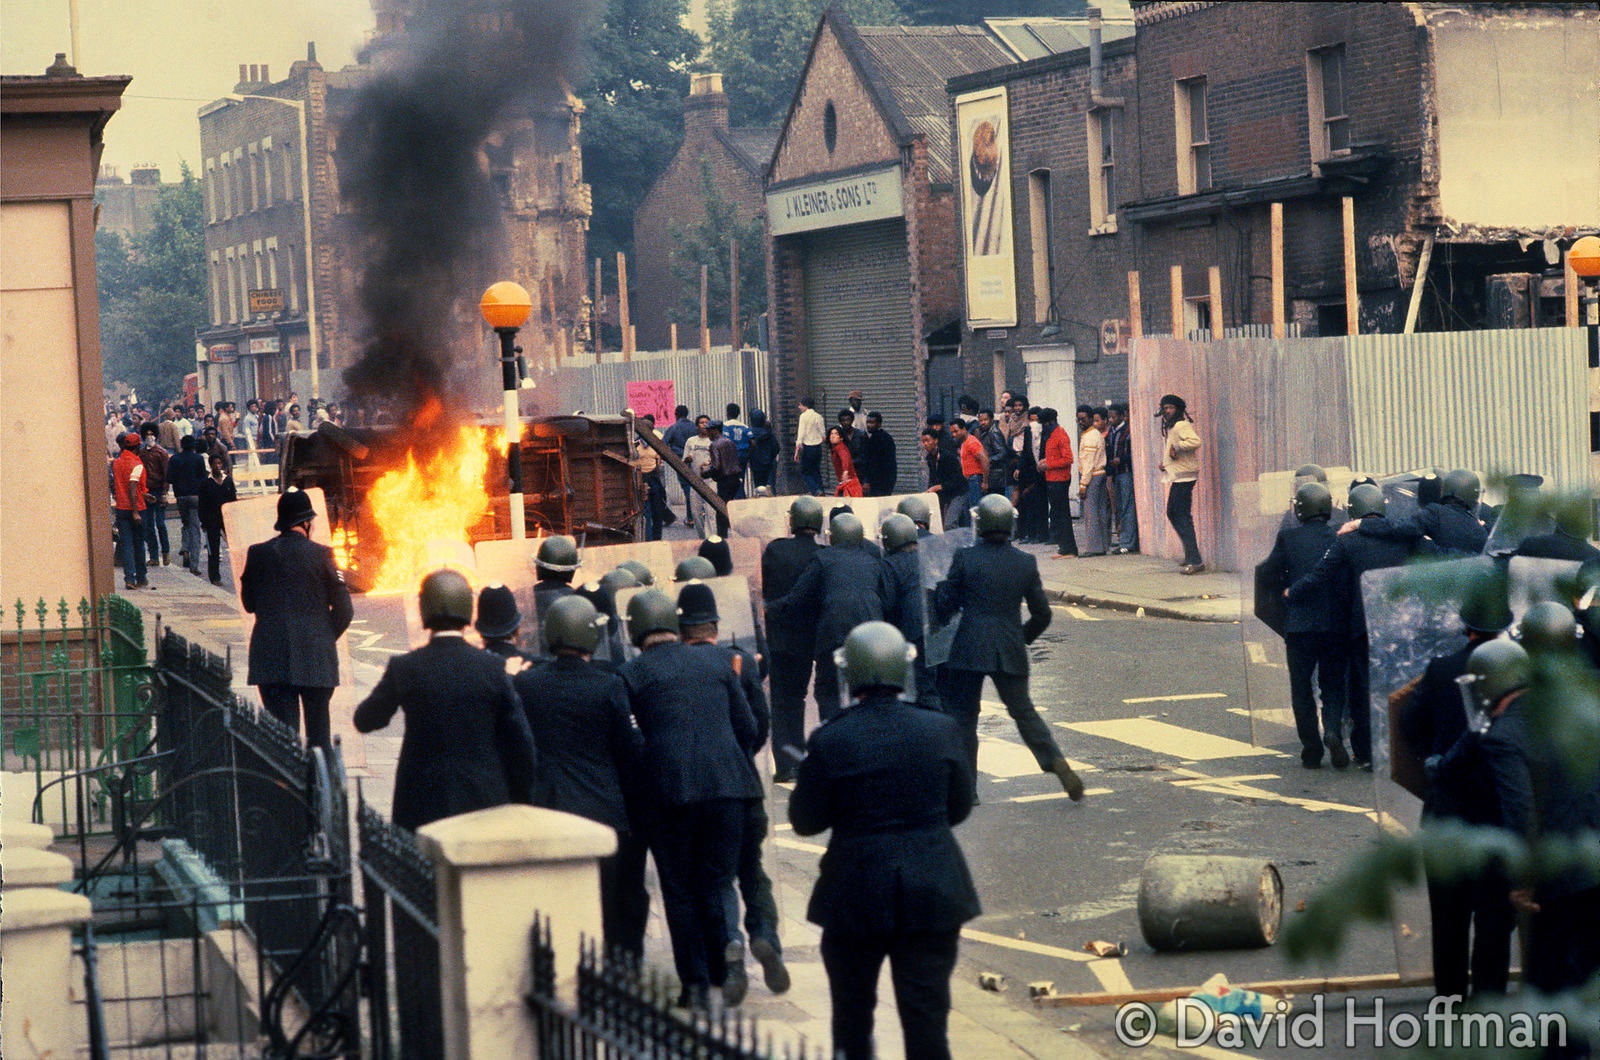 Railton Road, Brixton - the Frontline. Rioting July 1981.